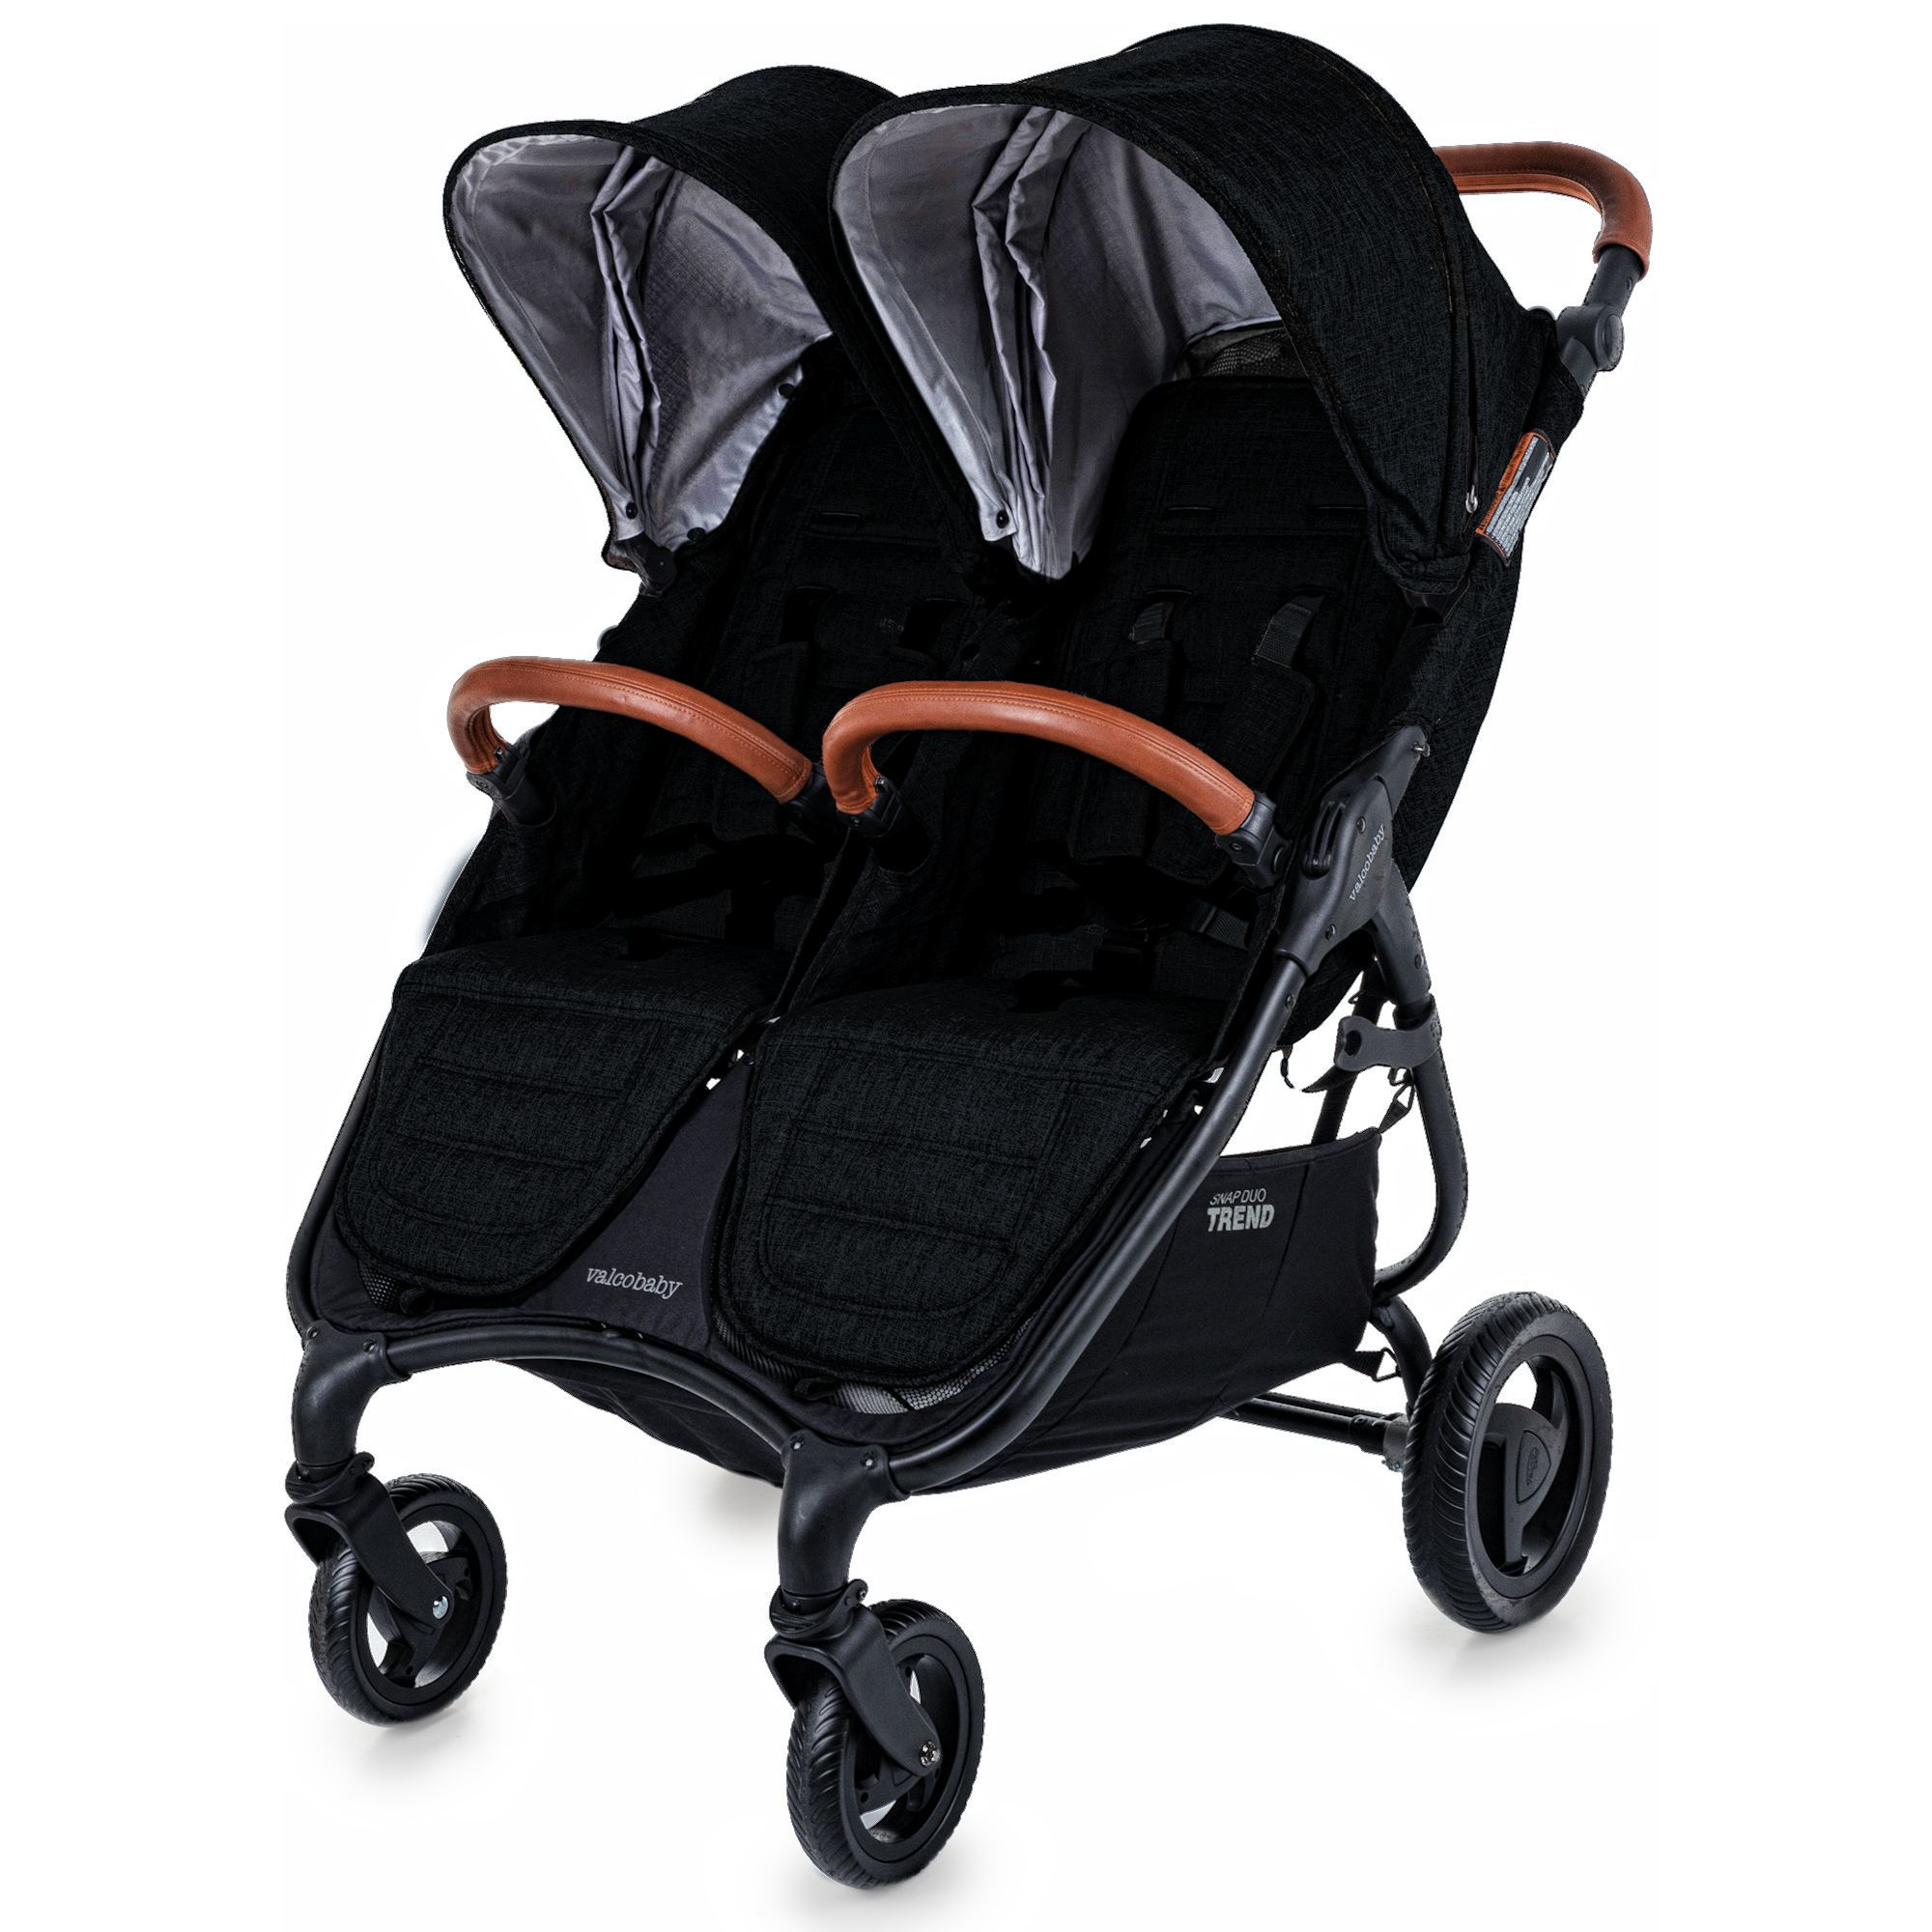 VALCO BABY SNAP DUO TREND VALCO BABY SNAP DUO TREND / N0001 P2GQdp2A.jpeg